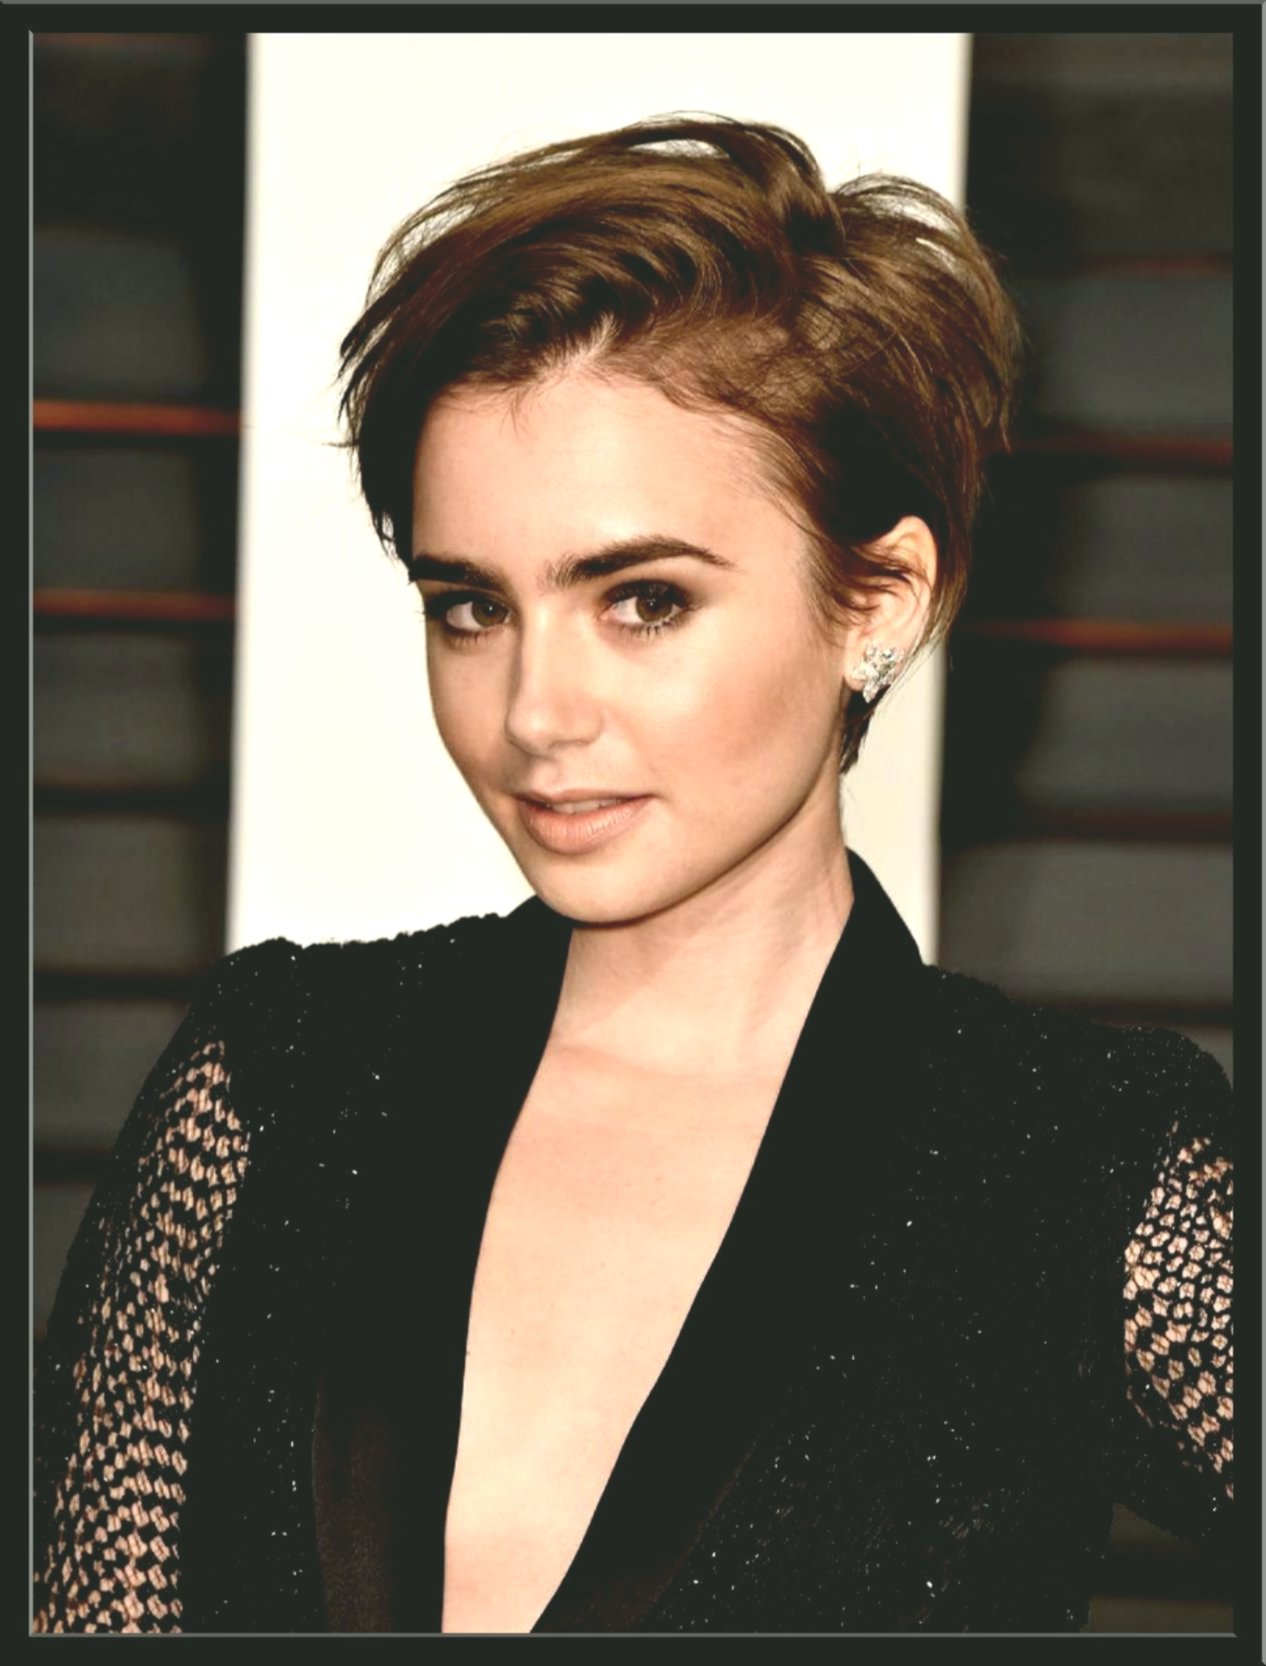 Best Short Hairstyles Style Portrait Best Of Short Hairstyles Styling Photo